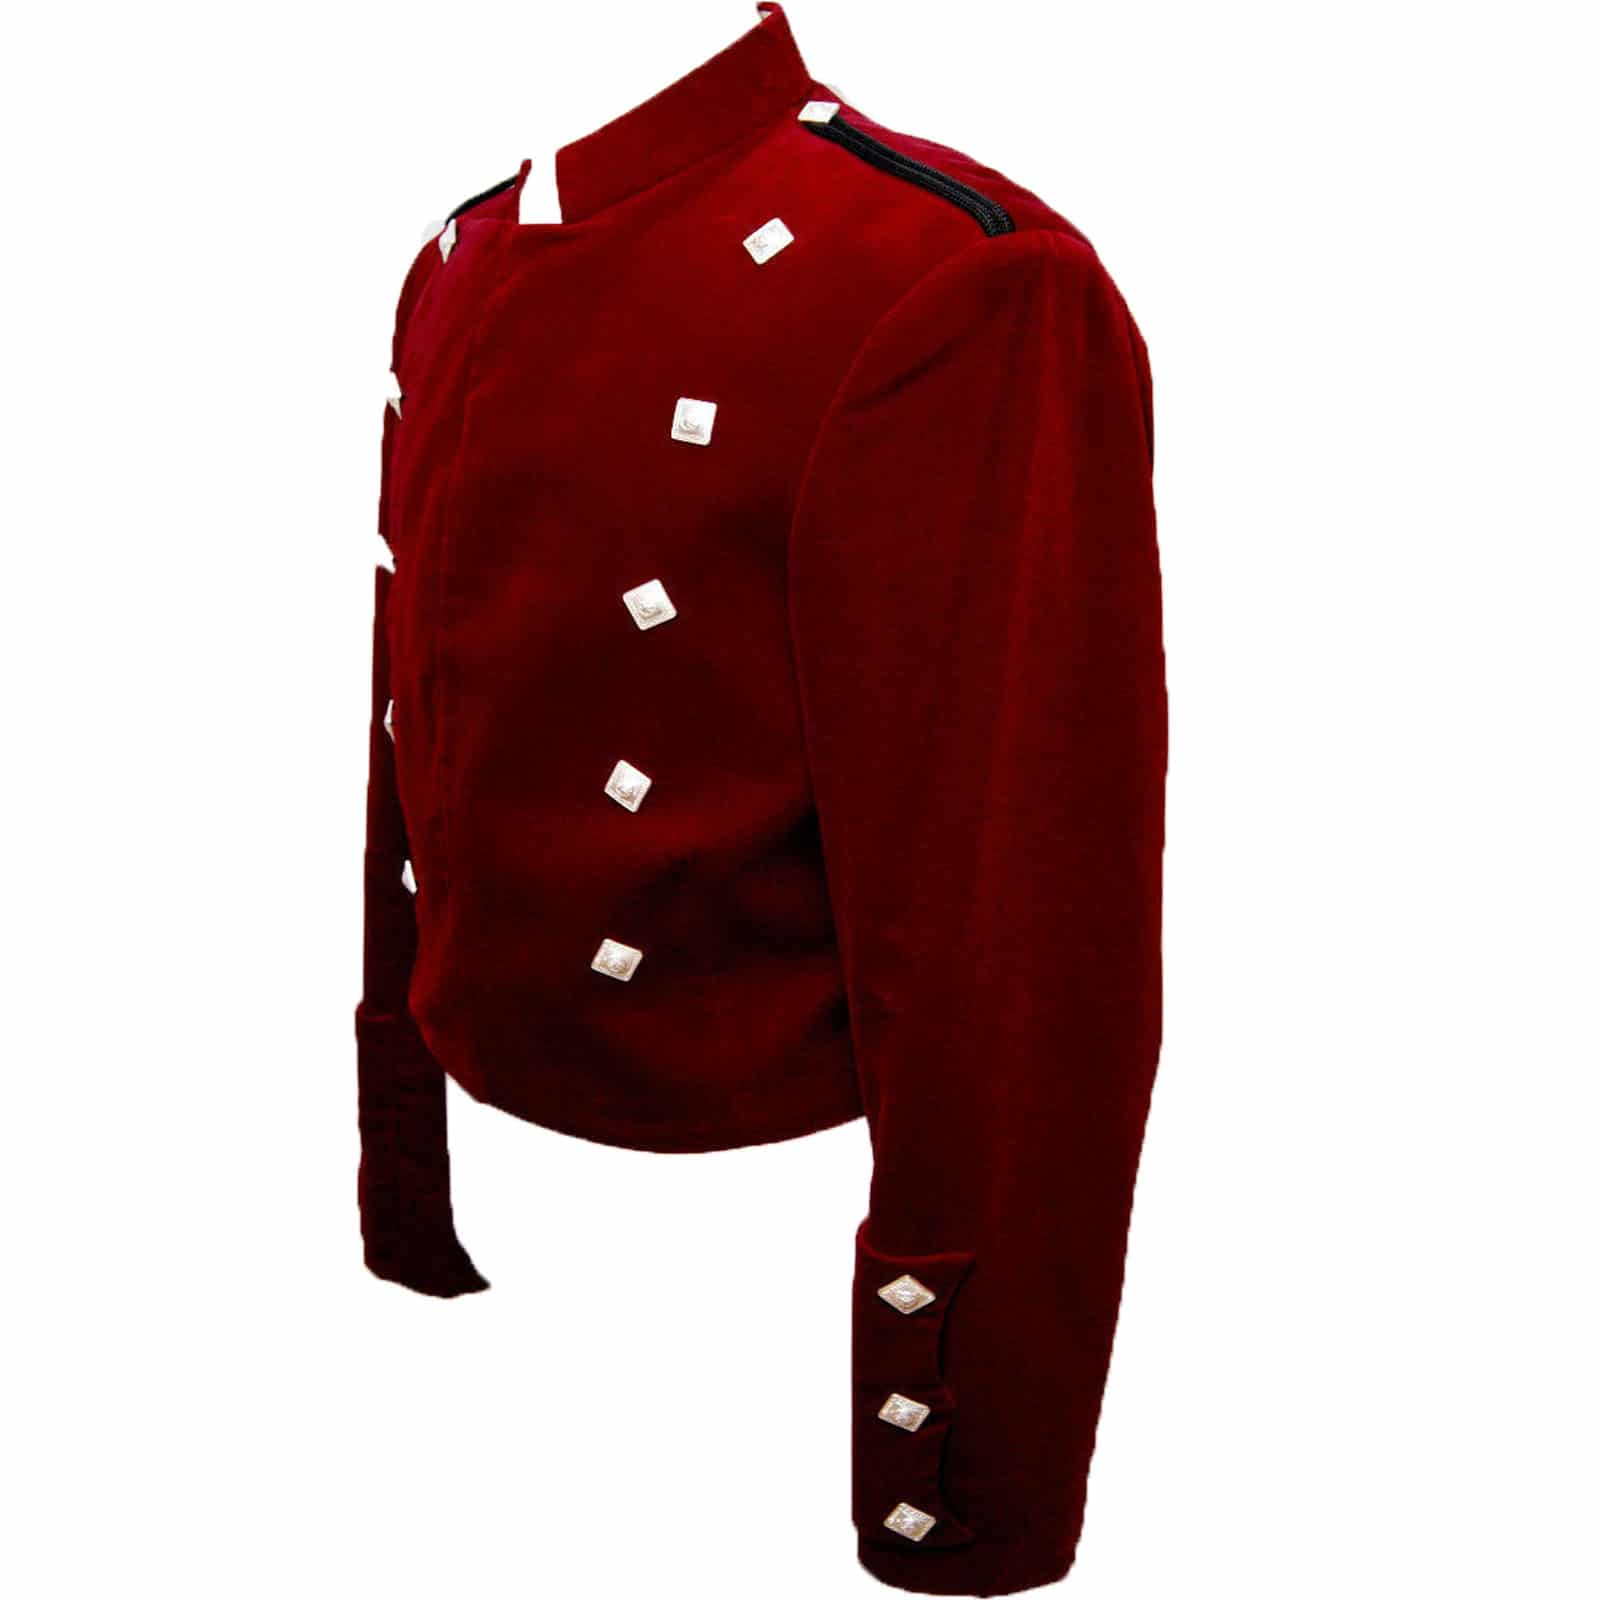 Montrose Red Velvet Kilt Jacket